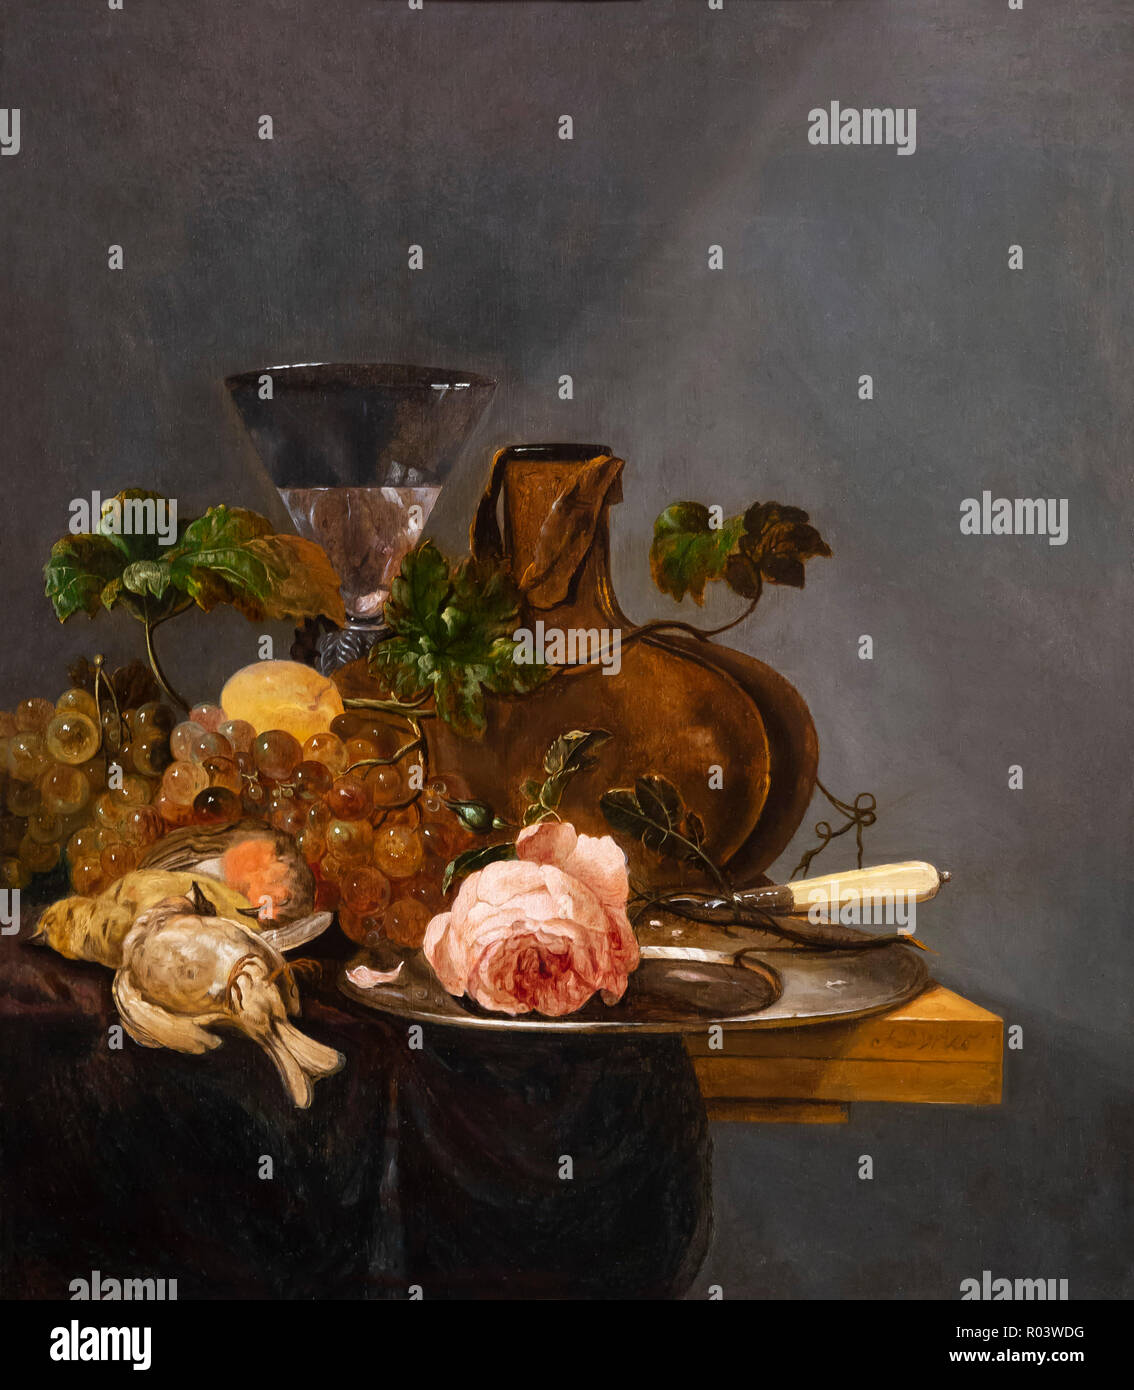 Still Life with Grapes, Dead Birds and Wine Glass on a Wooden Table, de Vries, Zurich Kunsthaus, Zurich, Switzerland, Europe - Stock Image